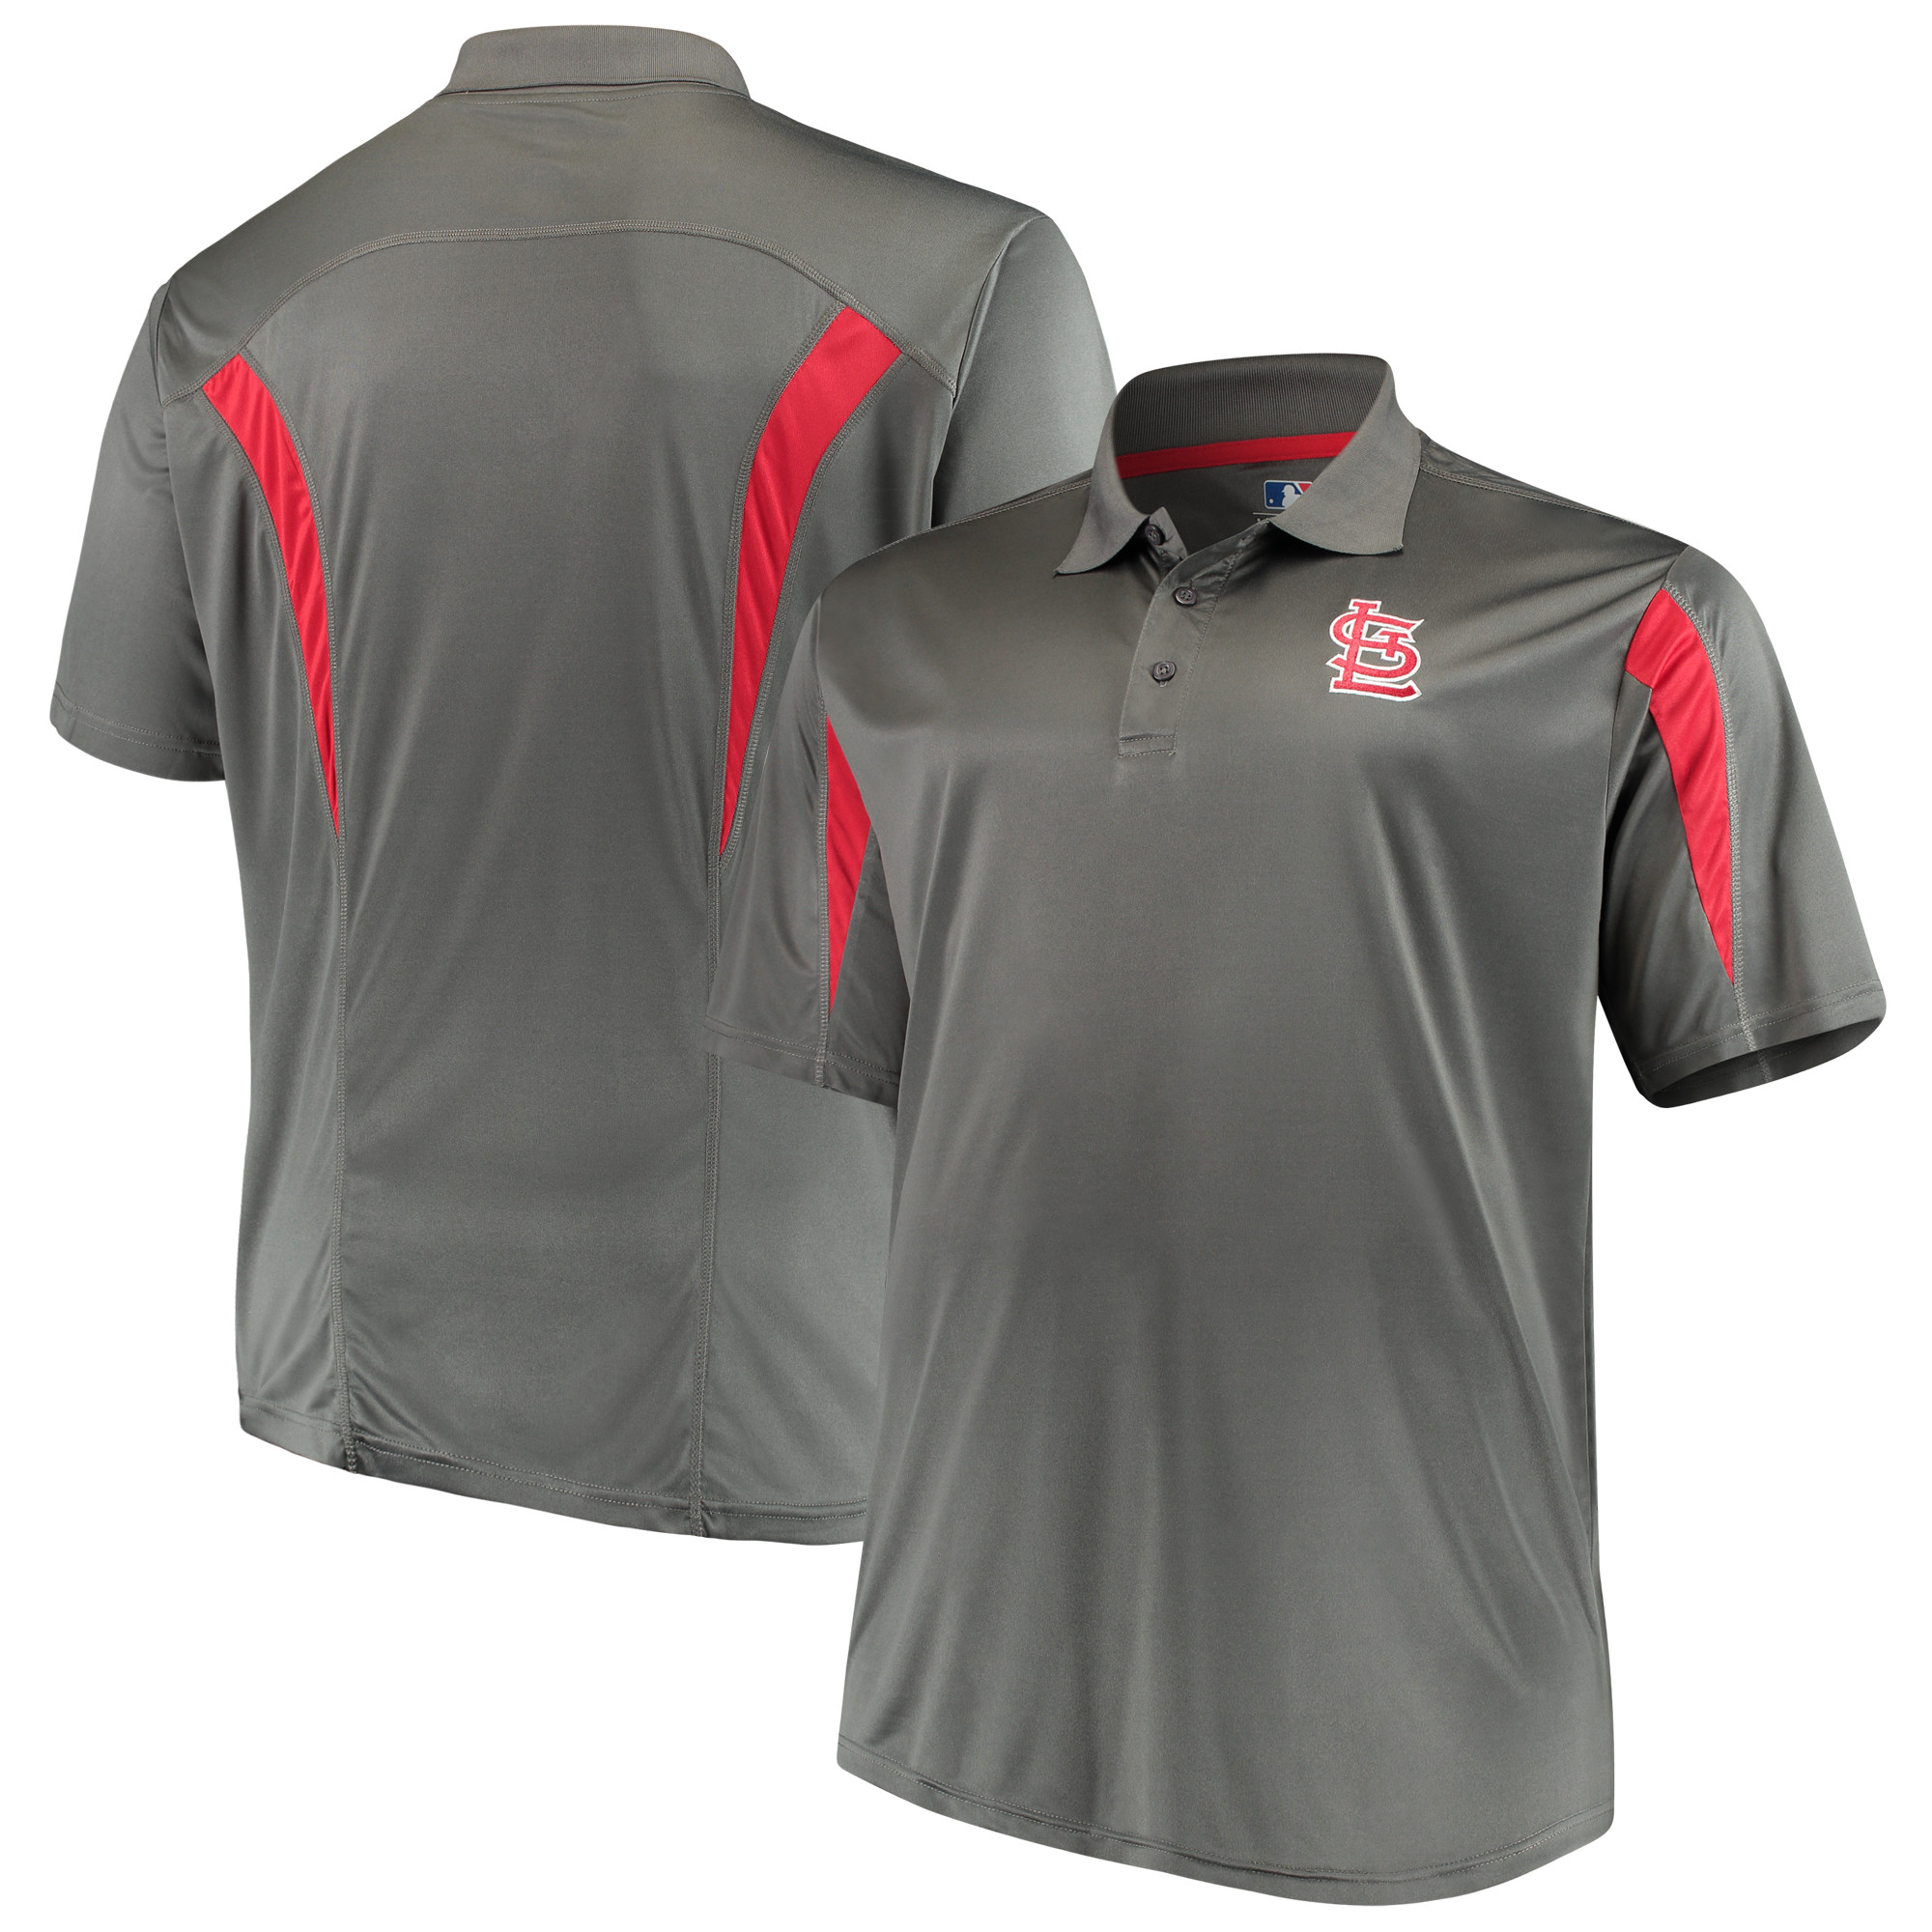 St. Louis Cardinals Majestic Contract Polo - Charcoal/Red